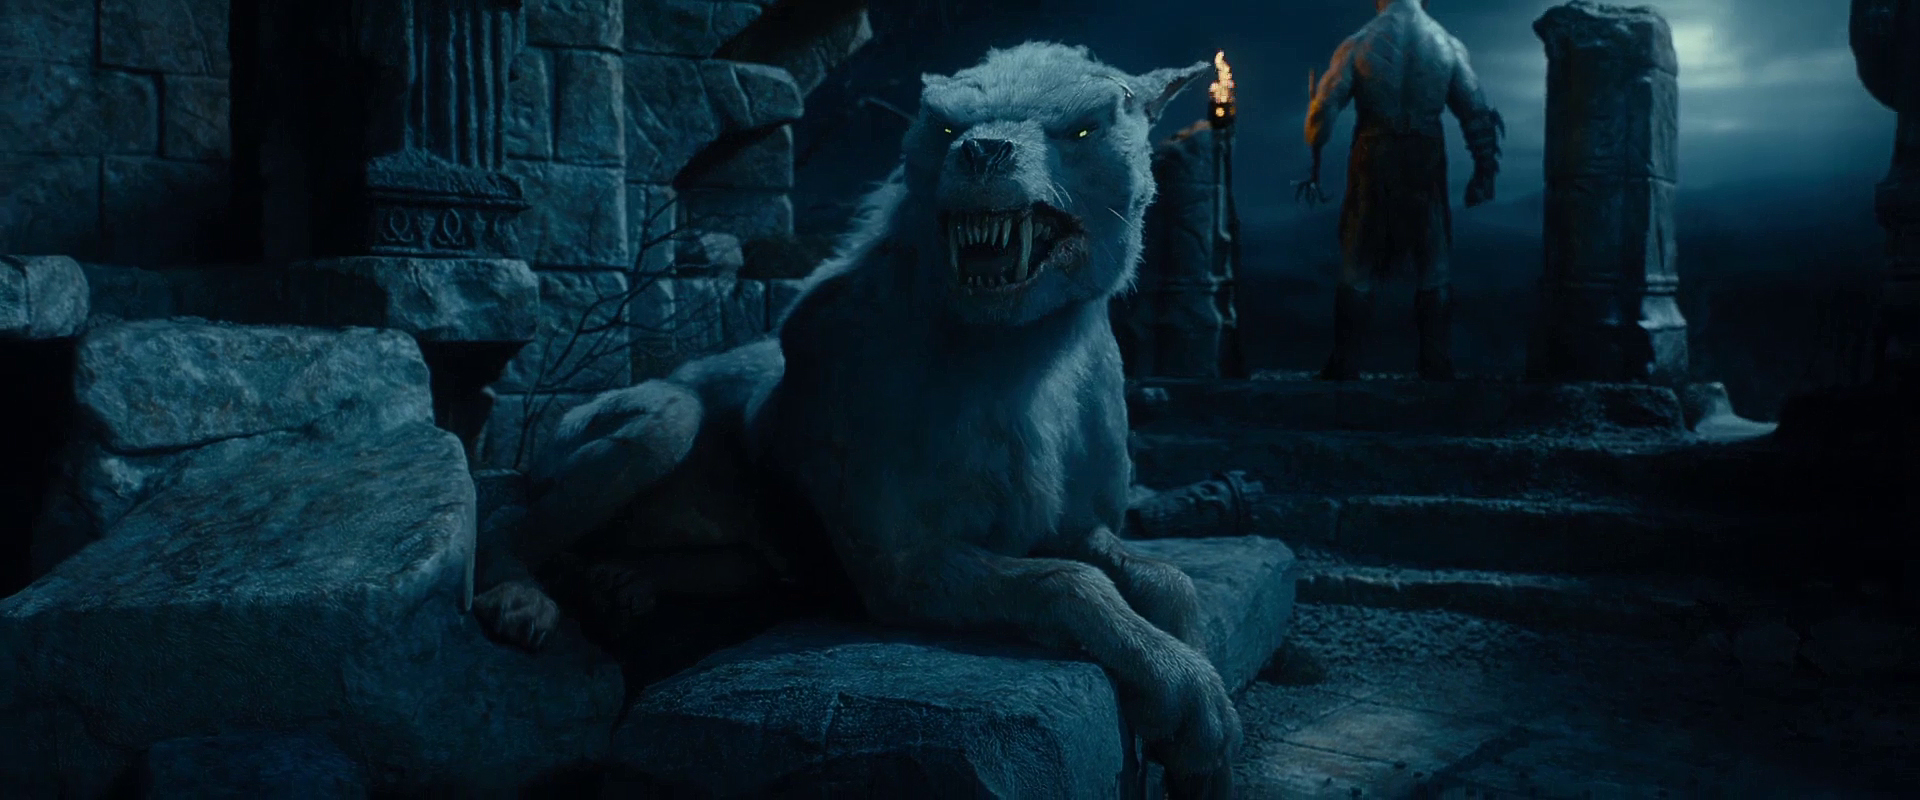 Warg Matriarch The One Wiki To Rule Them All Fandom